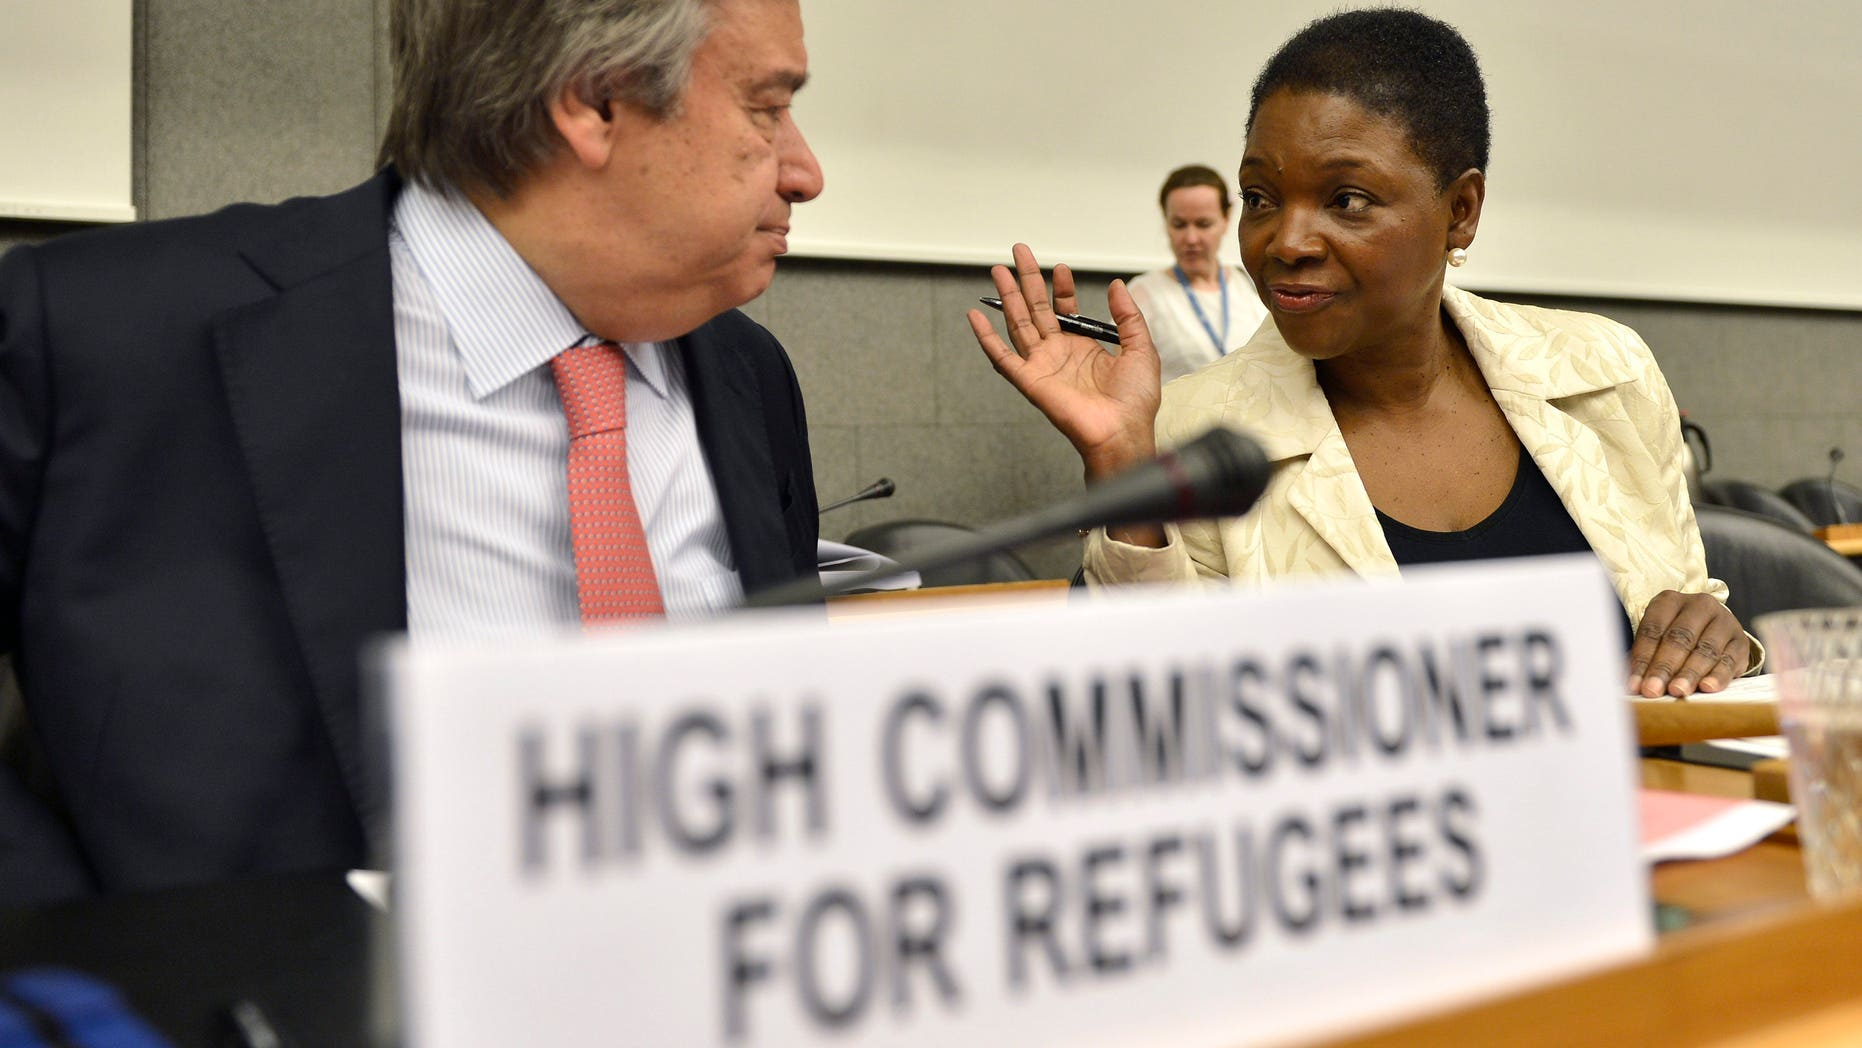 Valerie Amos, right, Under-Secretary-General and Emergency Relief Coordinator of the United Nations Office for the Coordination of Humanitarian Affairs, OCHA, speaks with Antonio Guterres, left, United Nations High Commissioner for Refugees, prior to a meeting for the launch of the Regional Response Plan for Syrian Refugees and Syrian Humanitarian Assistance Response Plan, at the World Trade Organisation (WTO) headquarters in Geneva, Switzerland, Friday, June 7, 2013. (AP Photo/Keystone, Martial Trezzini)